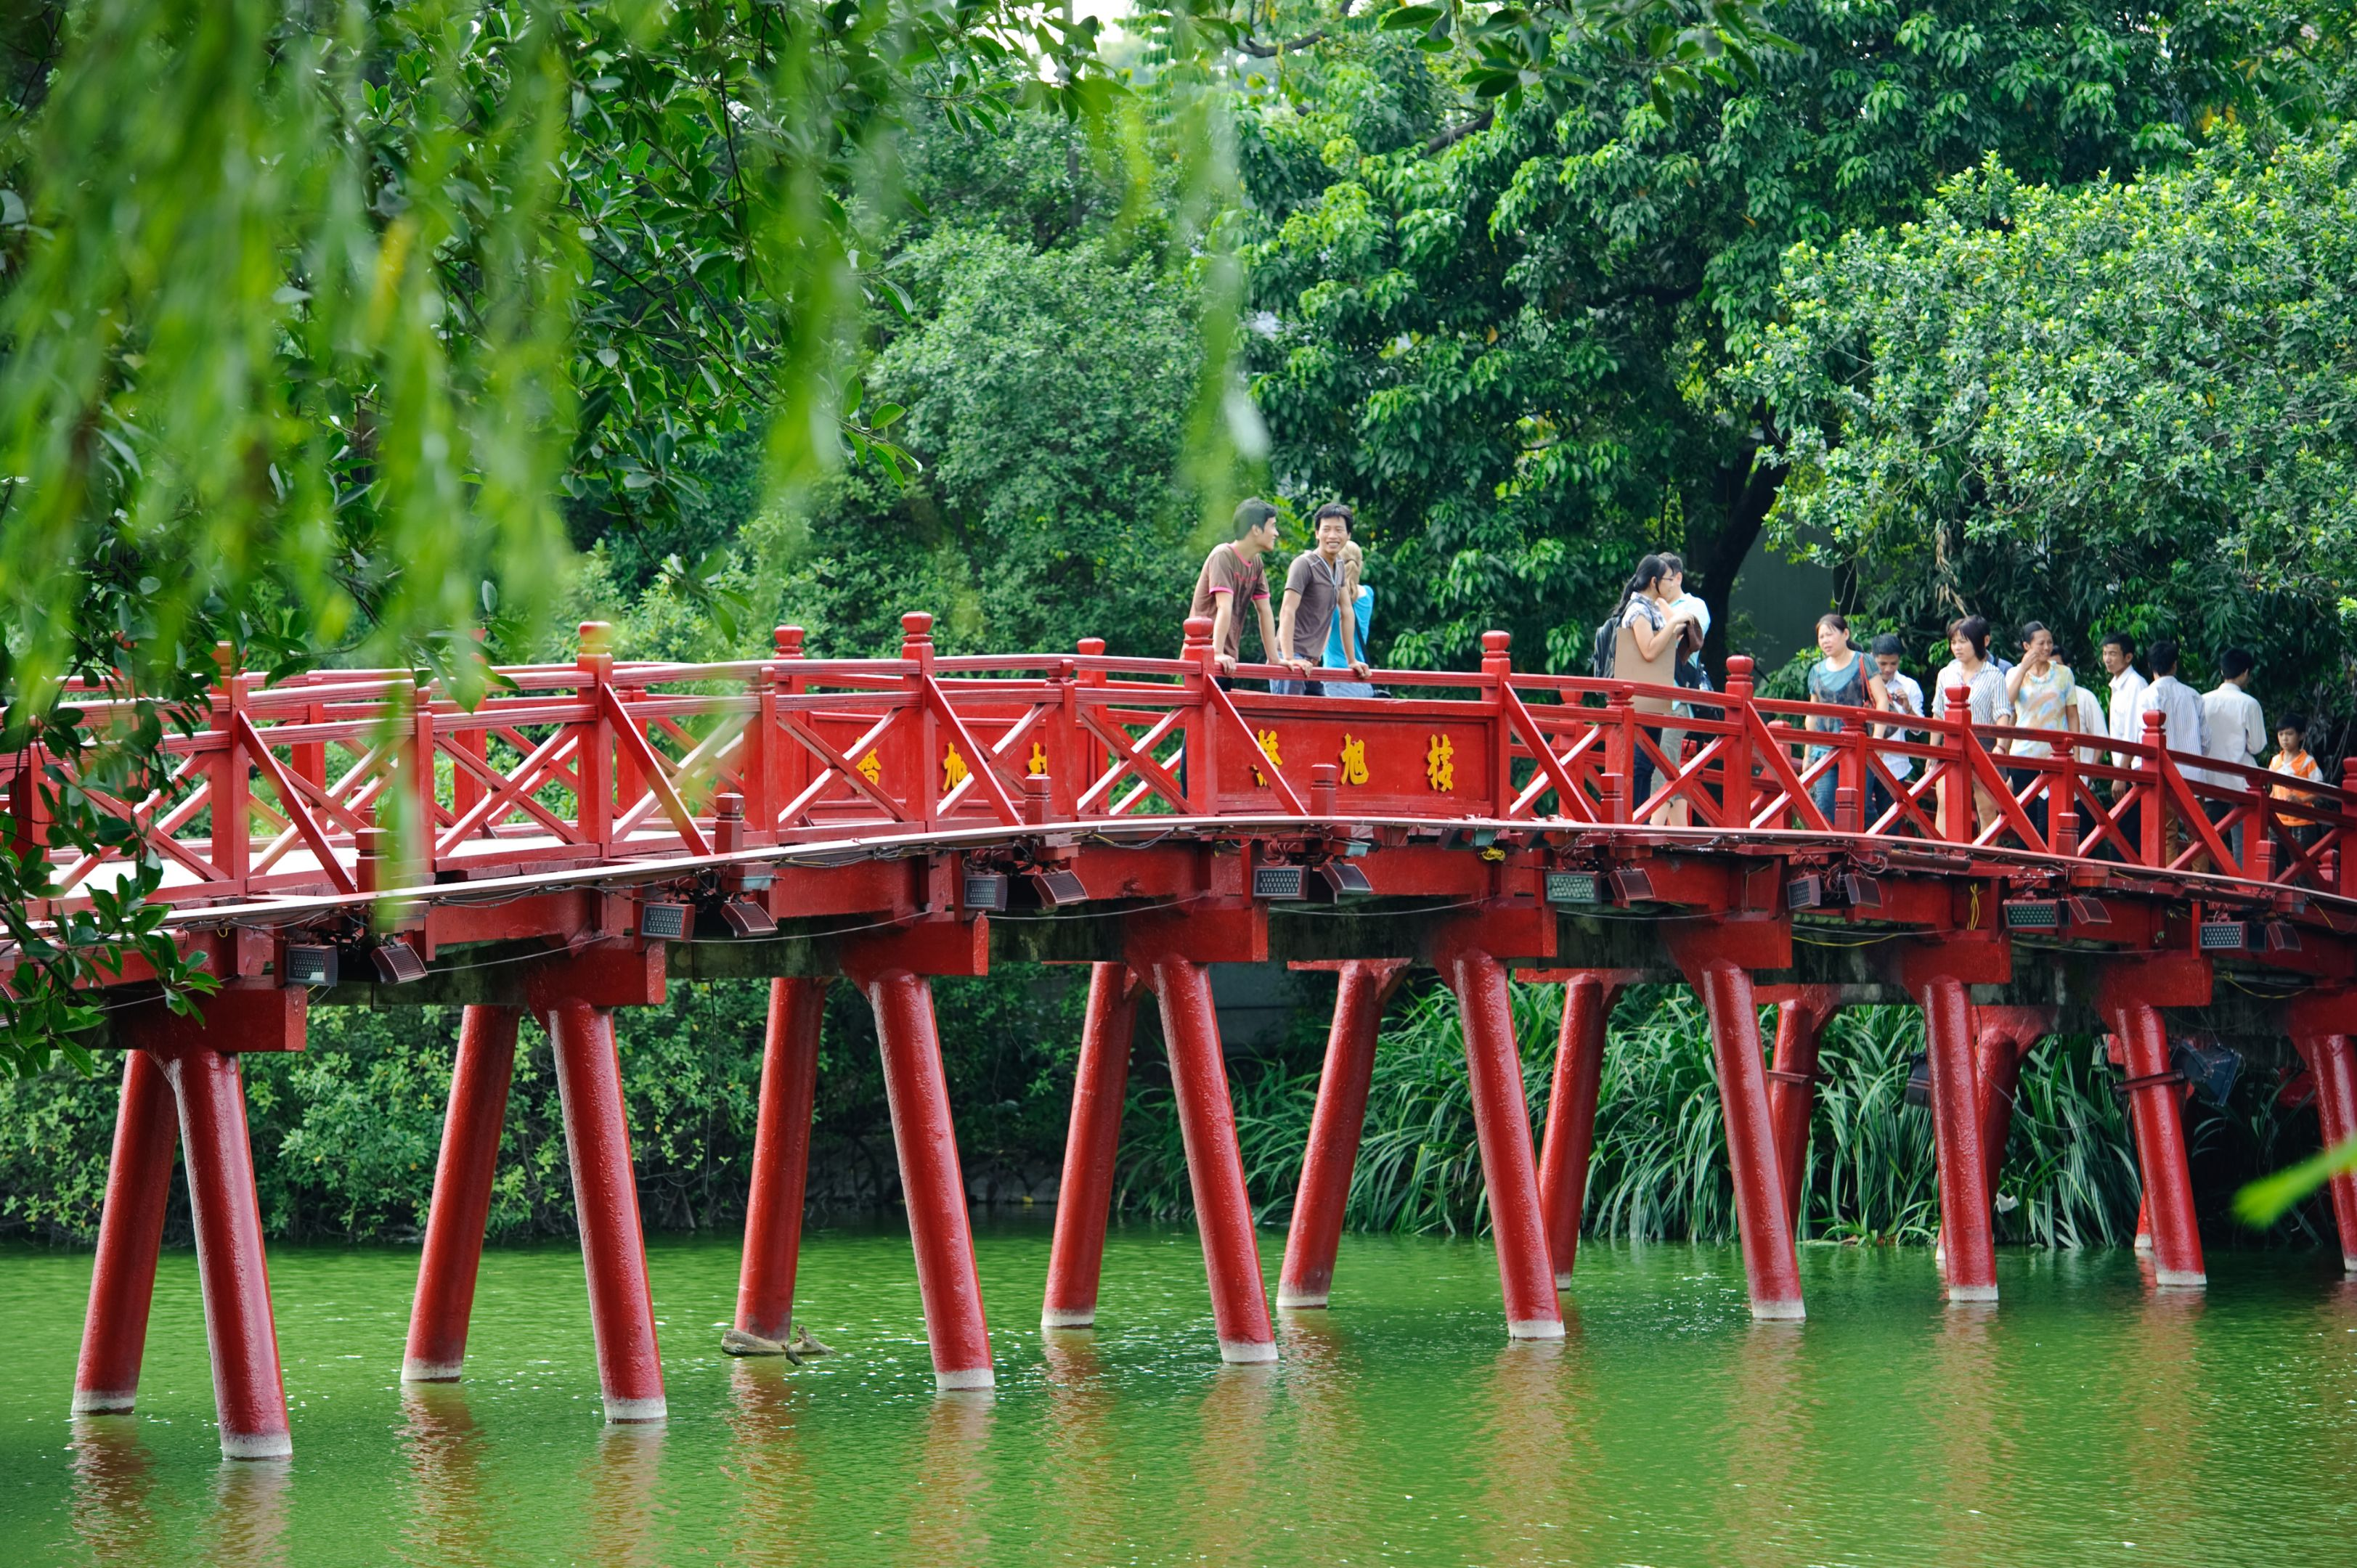 Hanoi red bridge. The wooden red painted bridge over the Hoan Kiem Lake connects the shore and the Jade Island on which Ngoc Son Temple stands